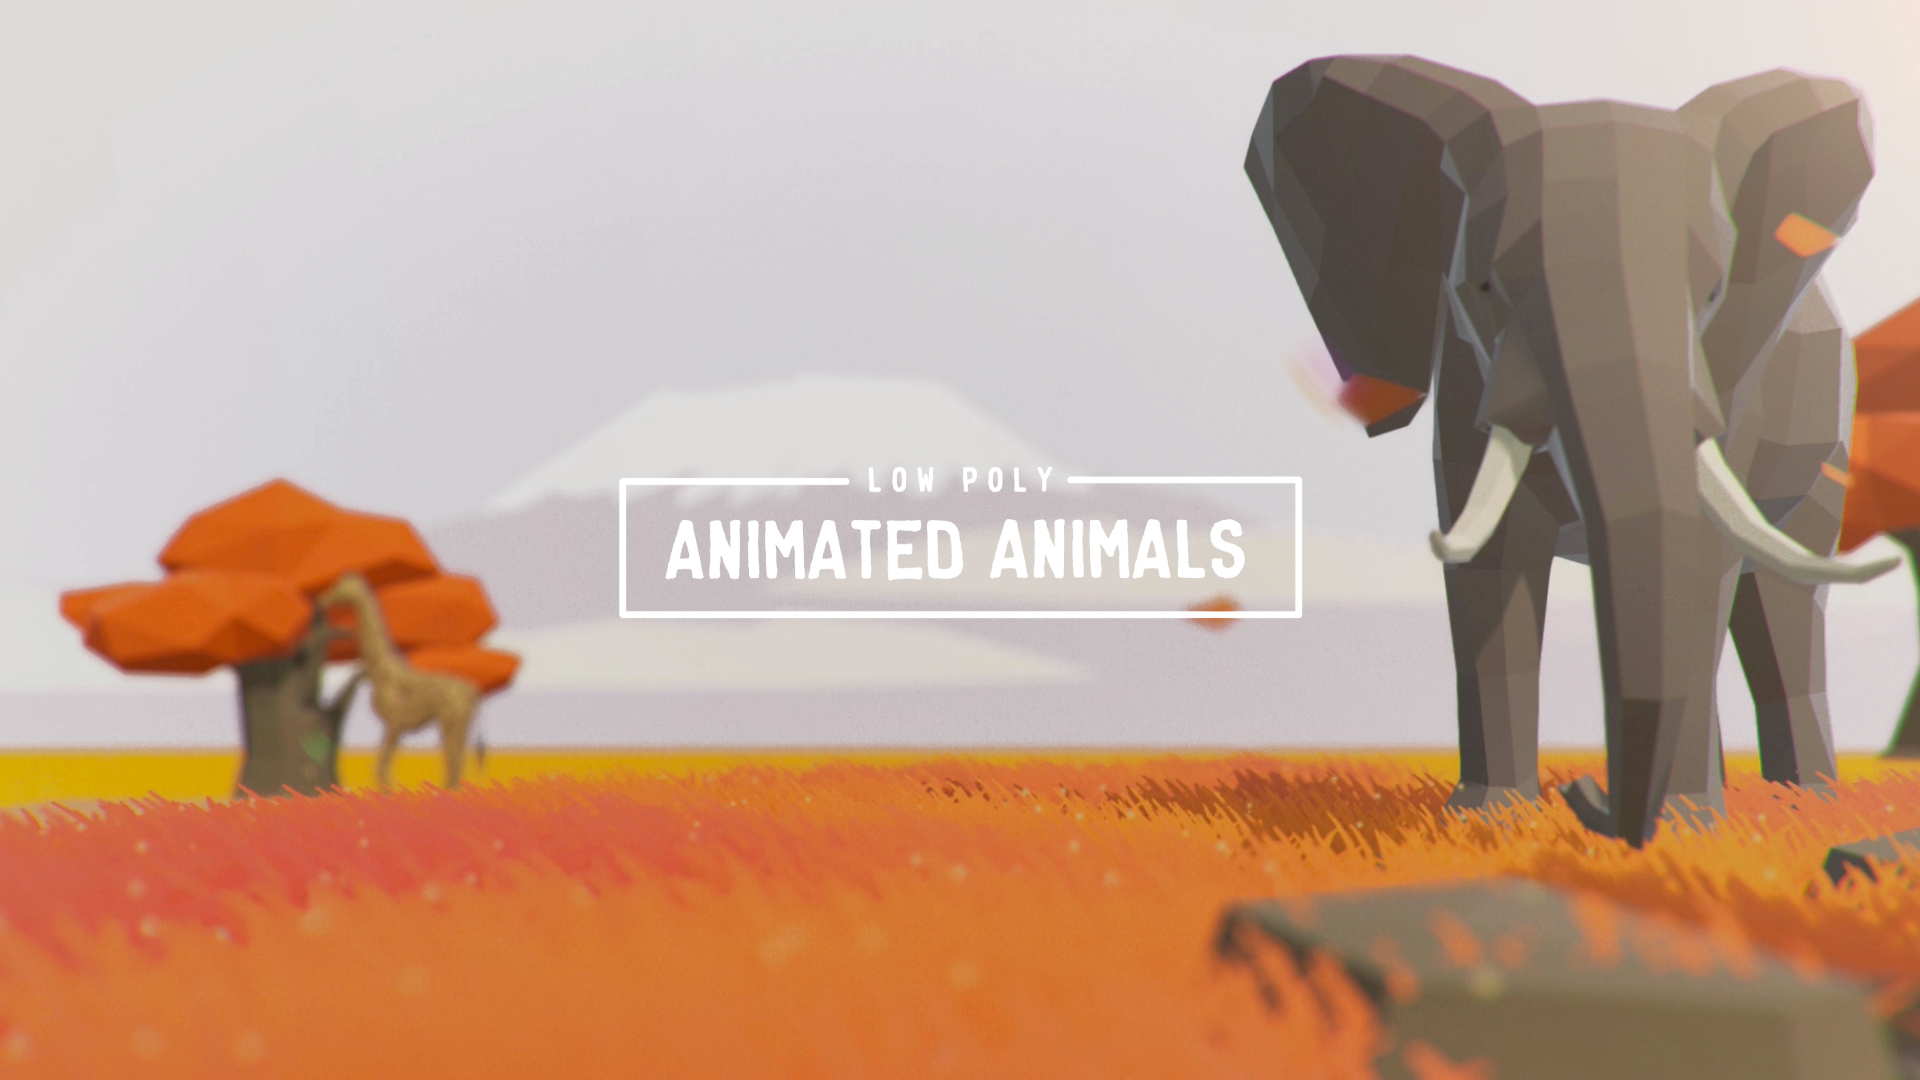 Low Poly Animated Animals